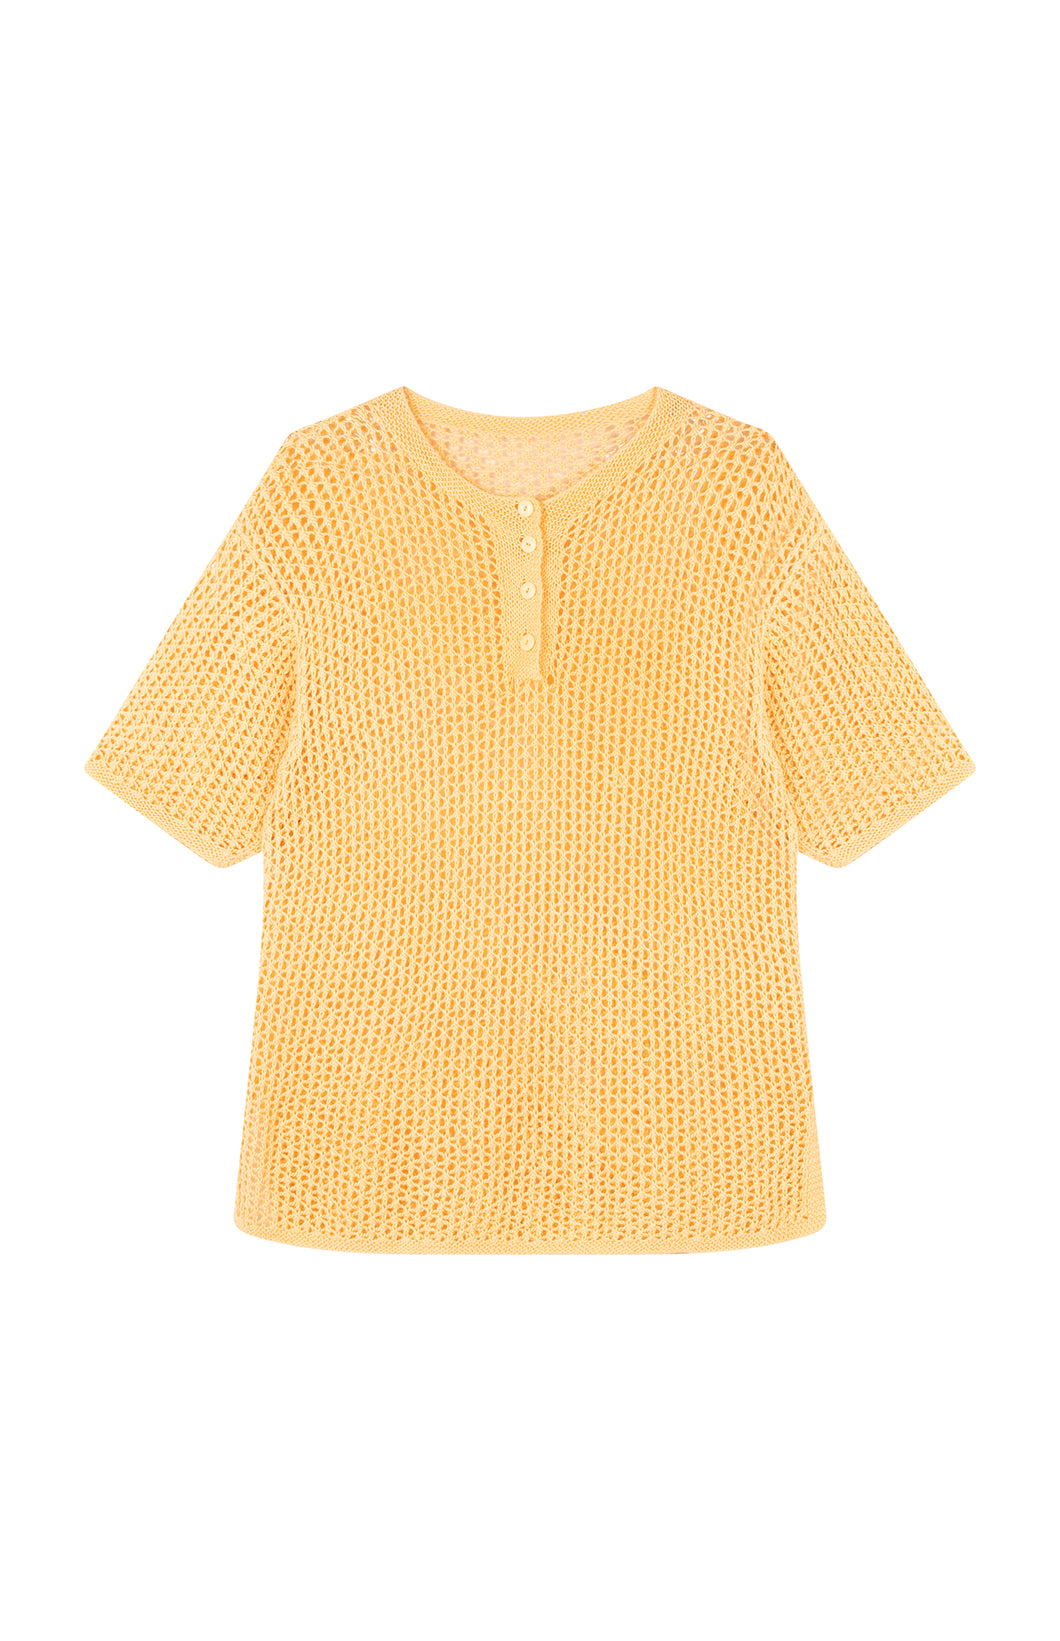 All Things Mochi - Tara Top - vintage yellow knit top (front)